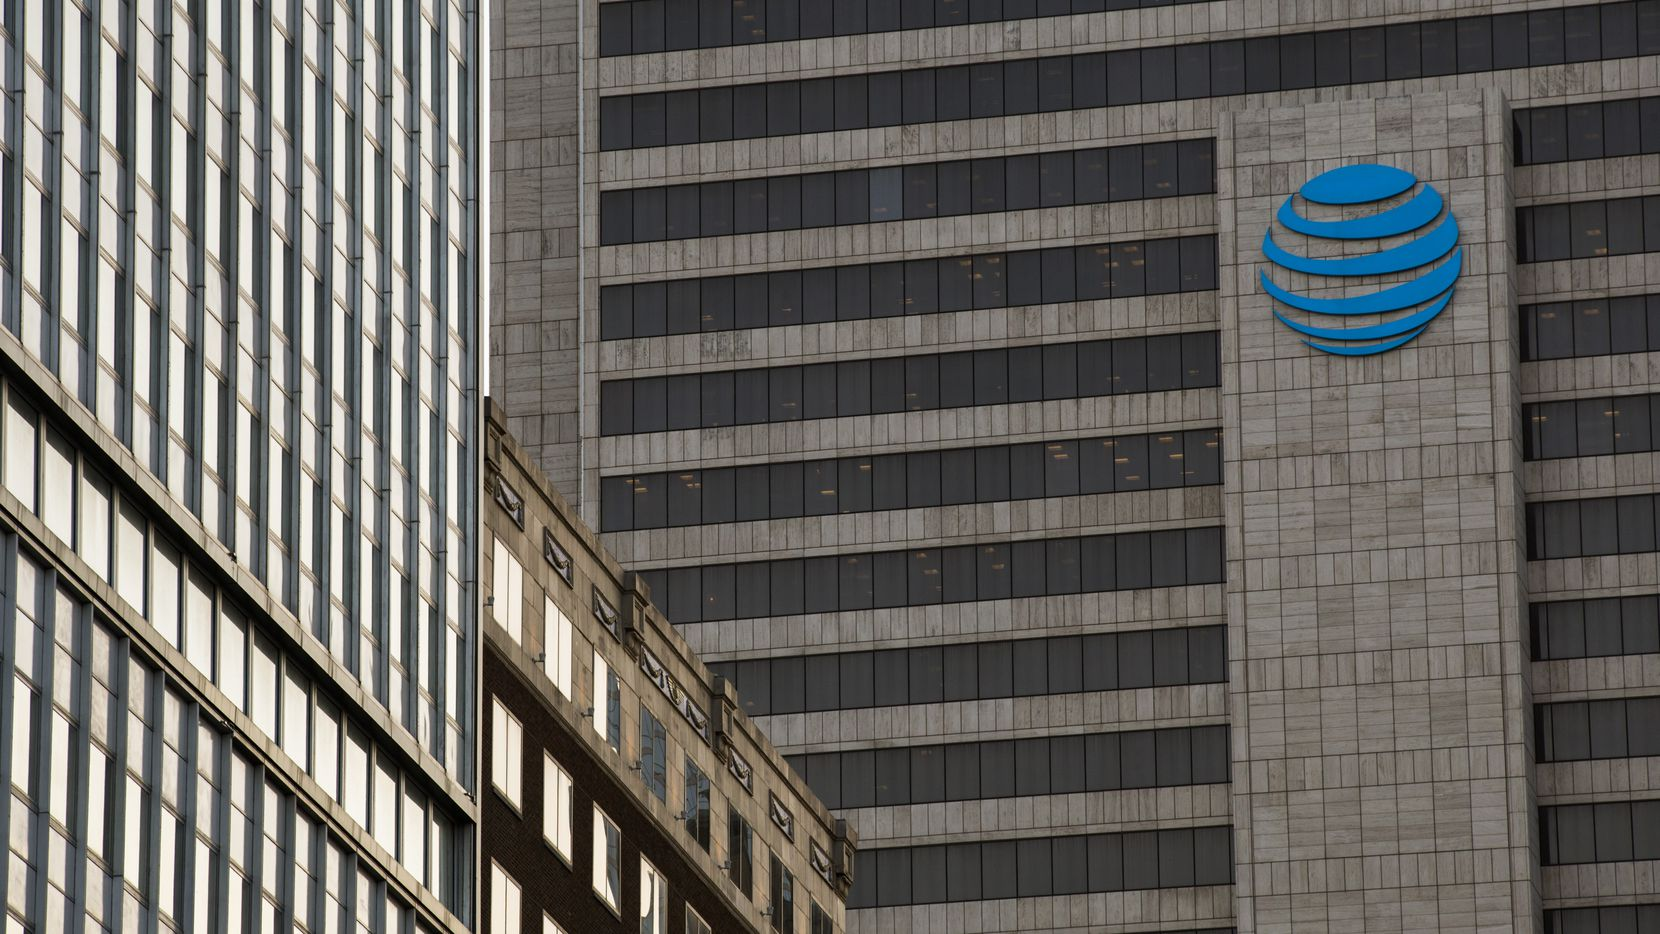 A union representing workers at Dallas-based AT&T continues to raise concerns about job cuts if an activist investor's proposals are followed by the company. The workers, who have been contract negotiations with AT&T for several weeks, voted to authorize a potential strike this week.